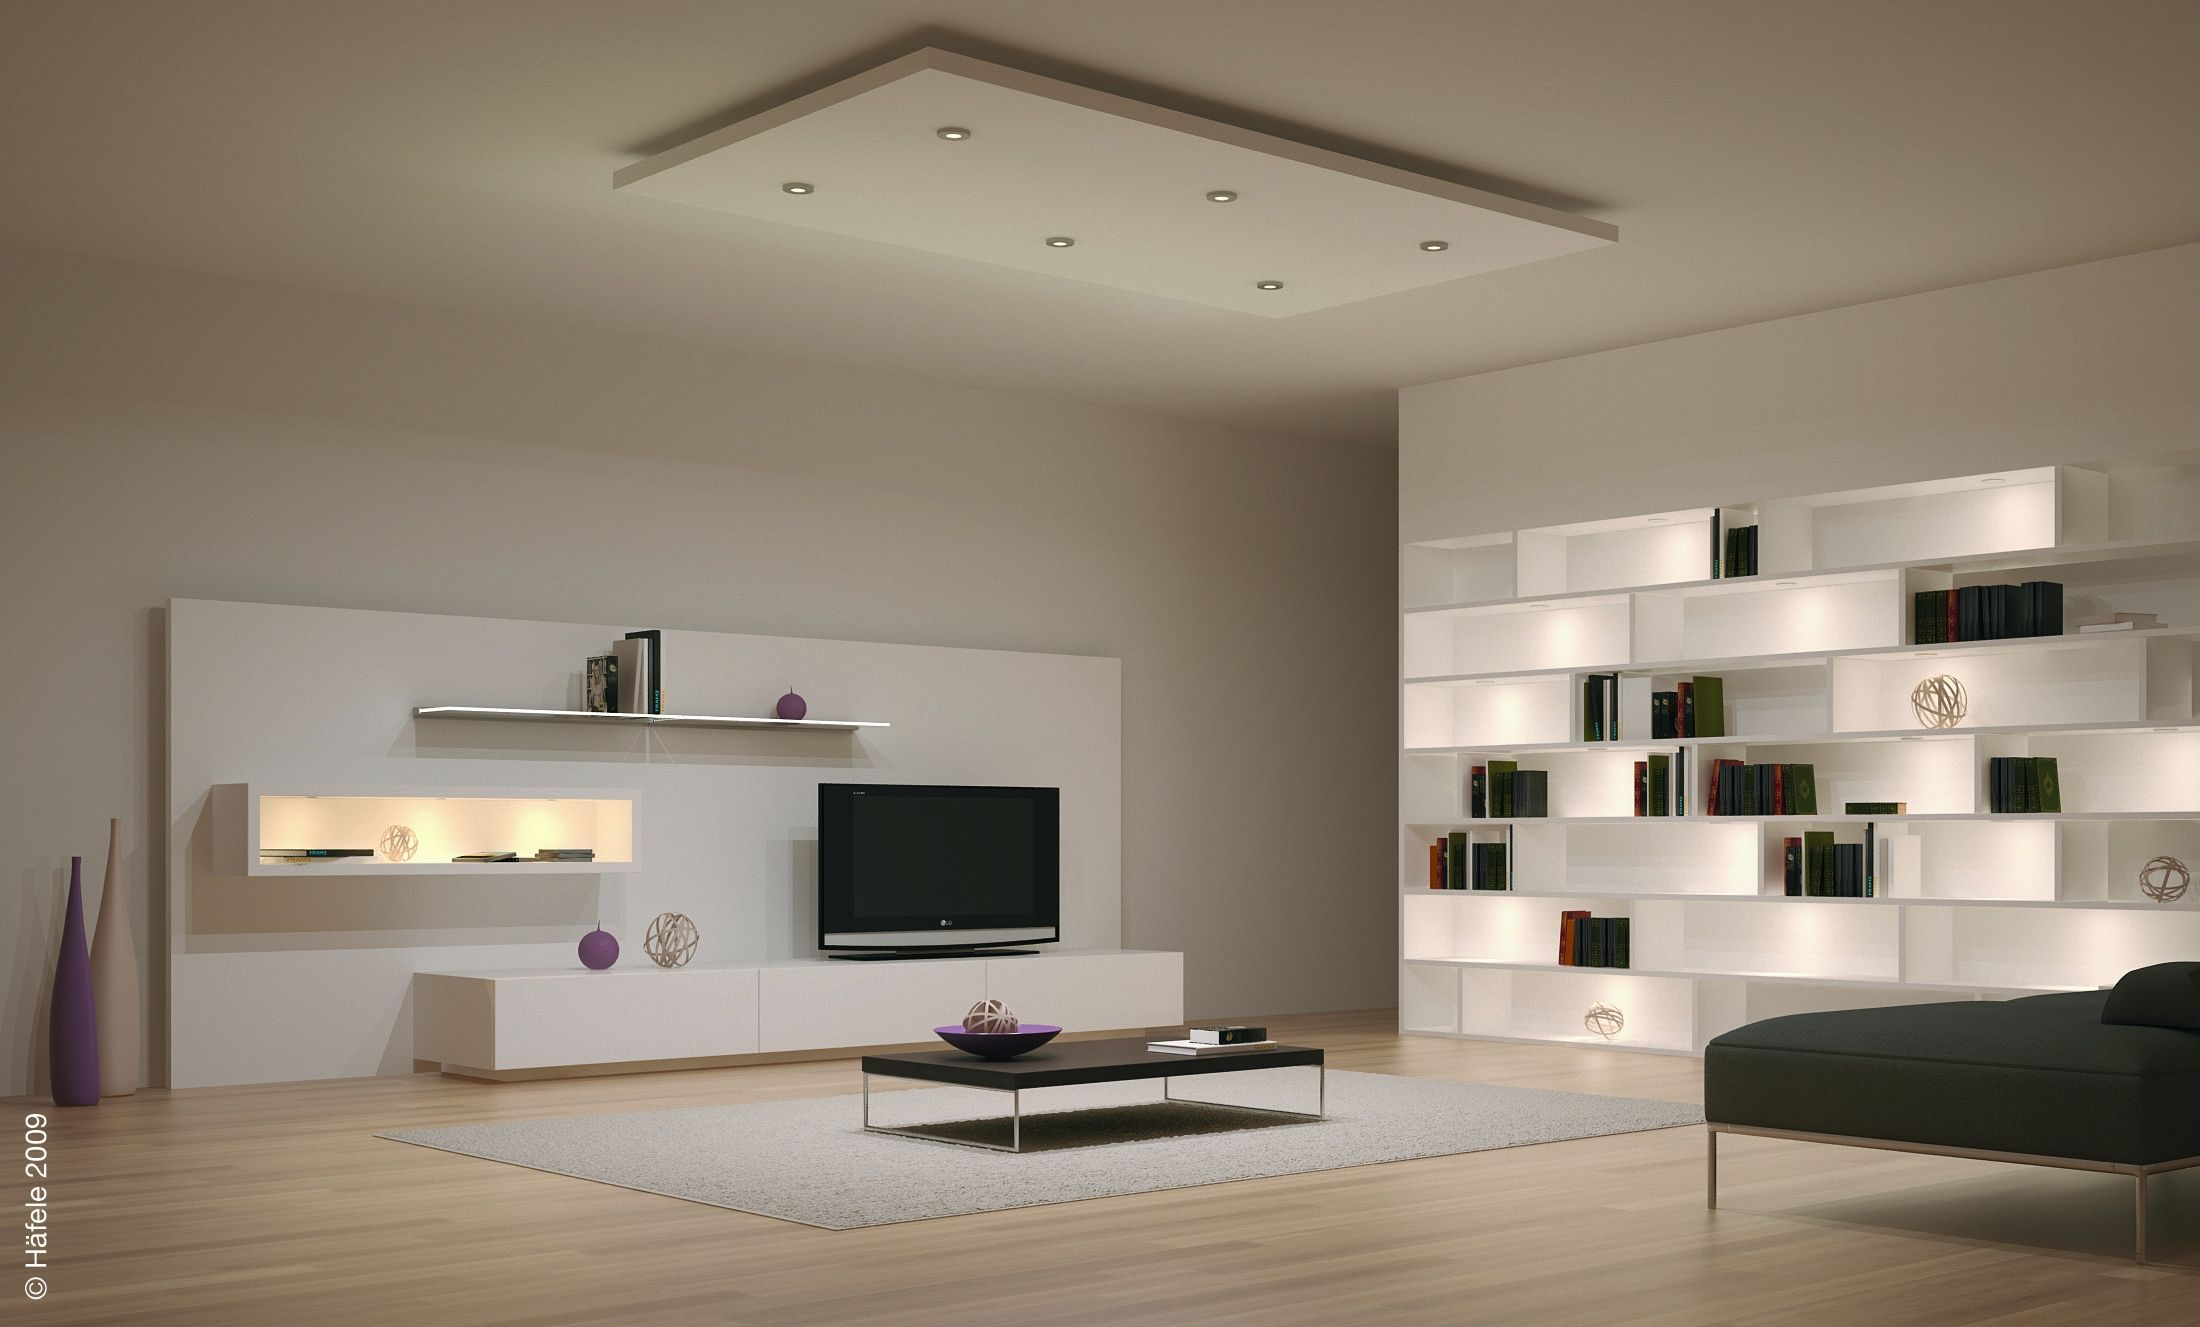 Ceiling Hidden Light Design In Living Room D House Free Kb